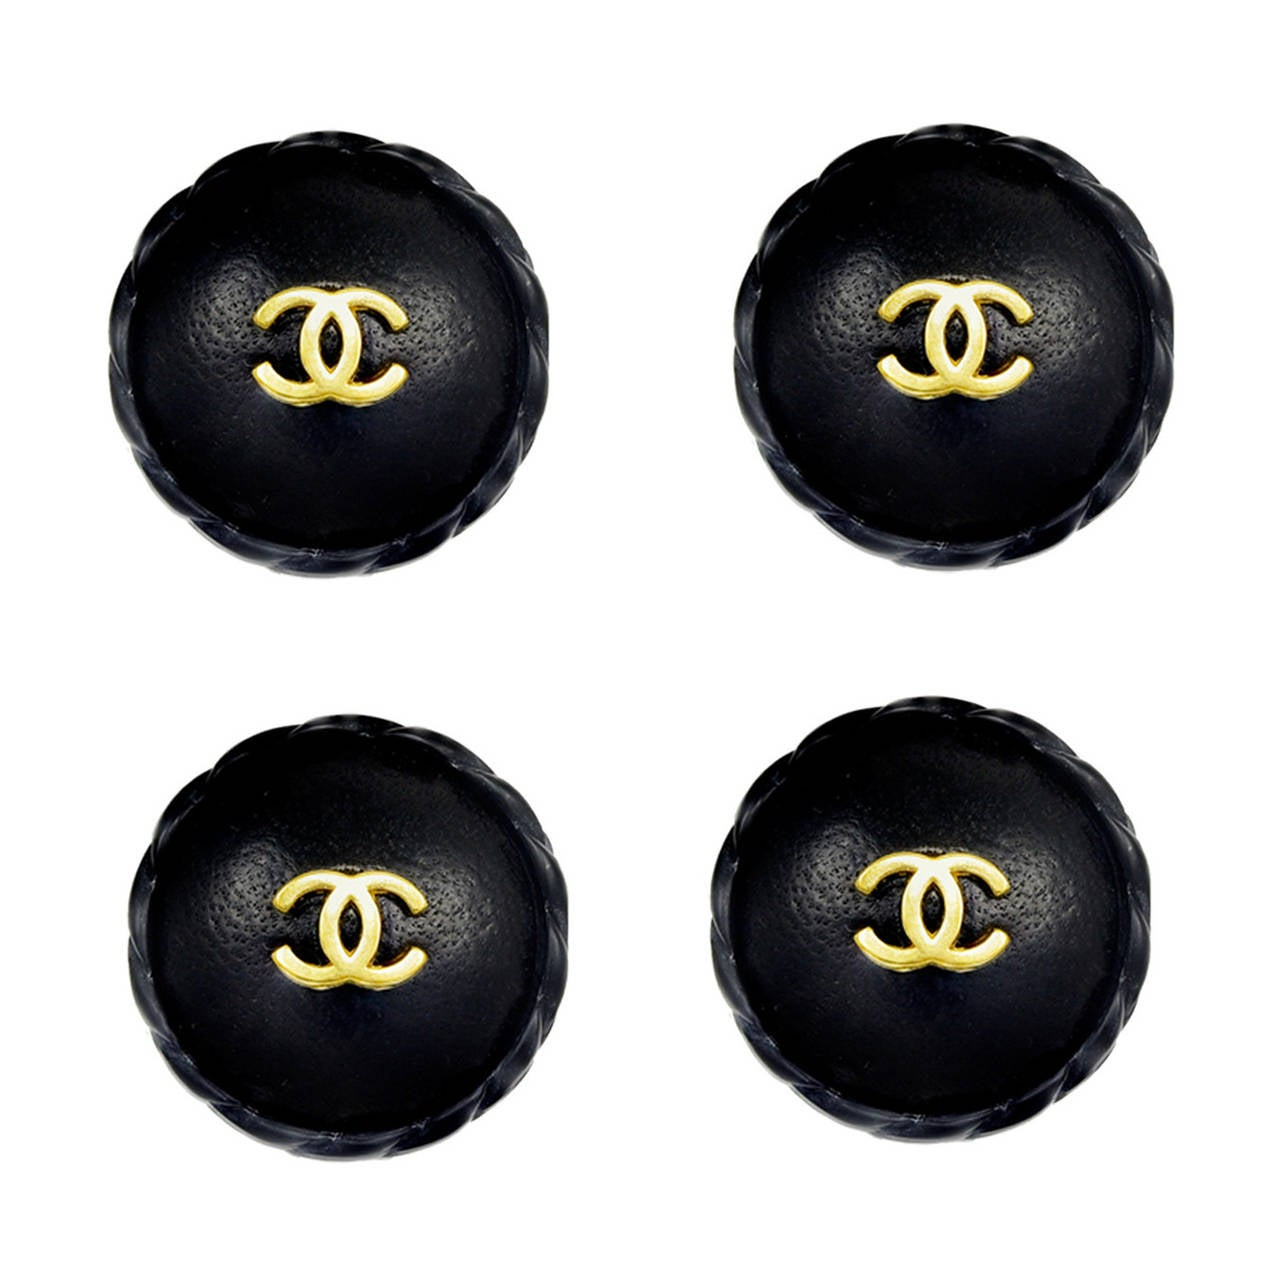 Huge Rare Chanel Leather Buttons 1